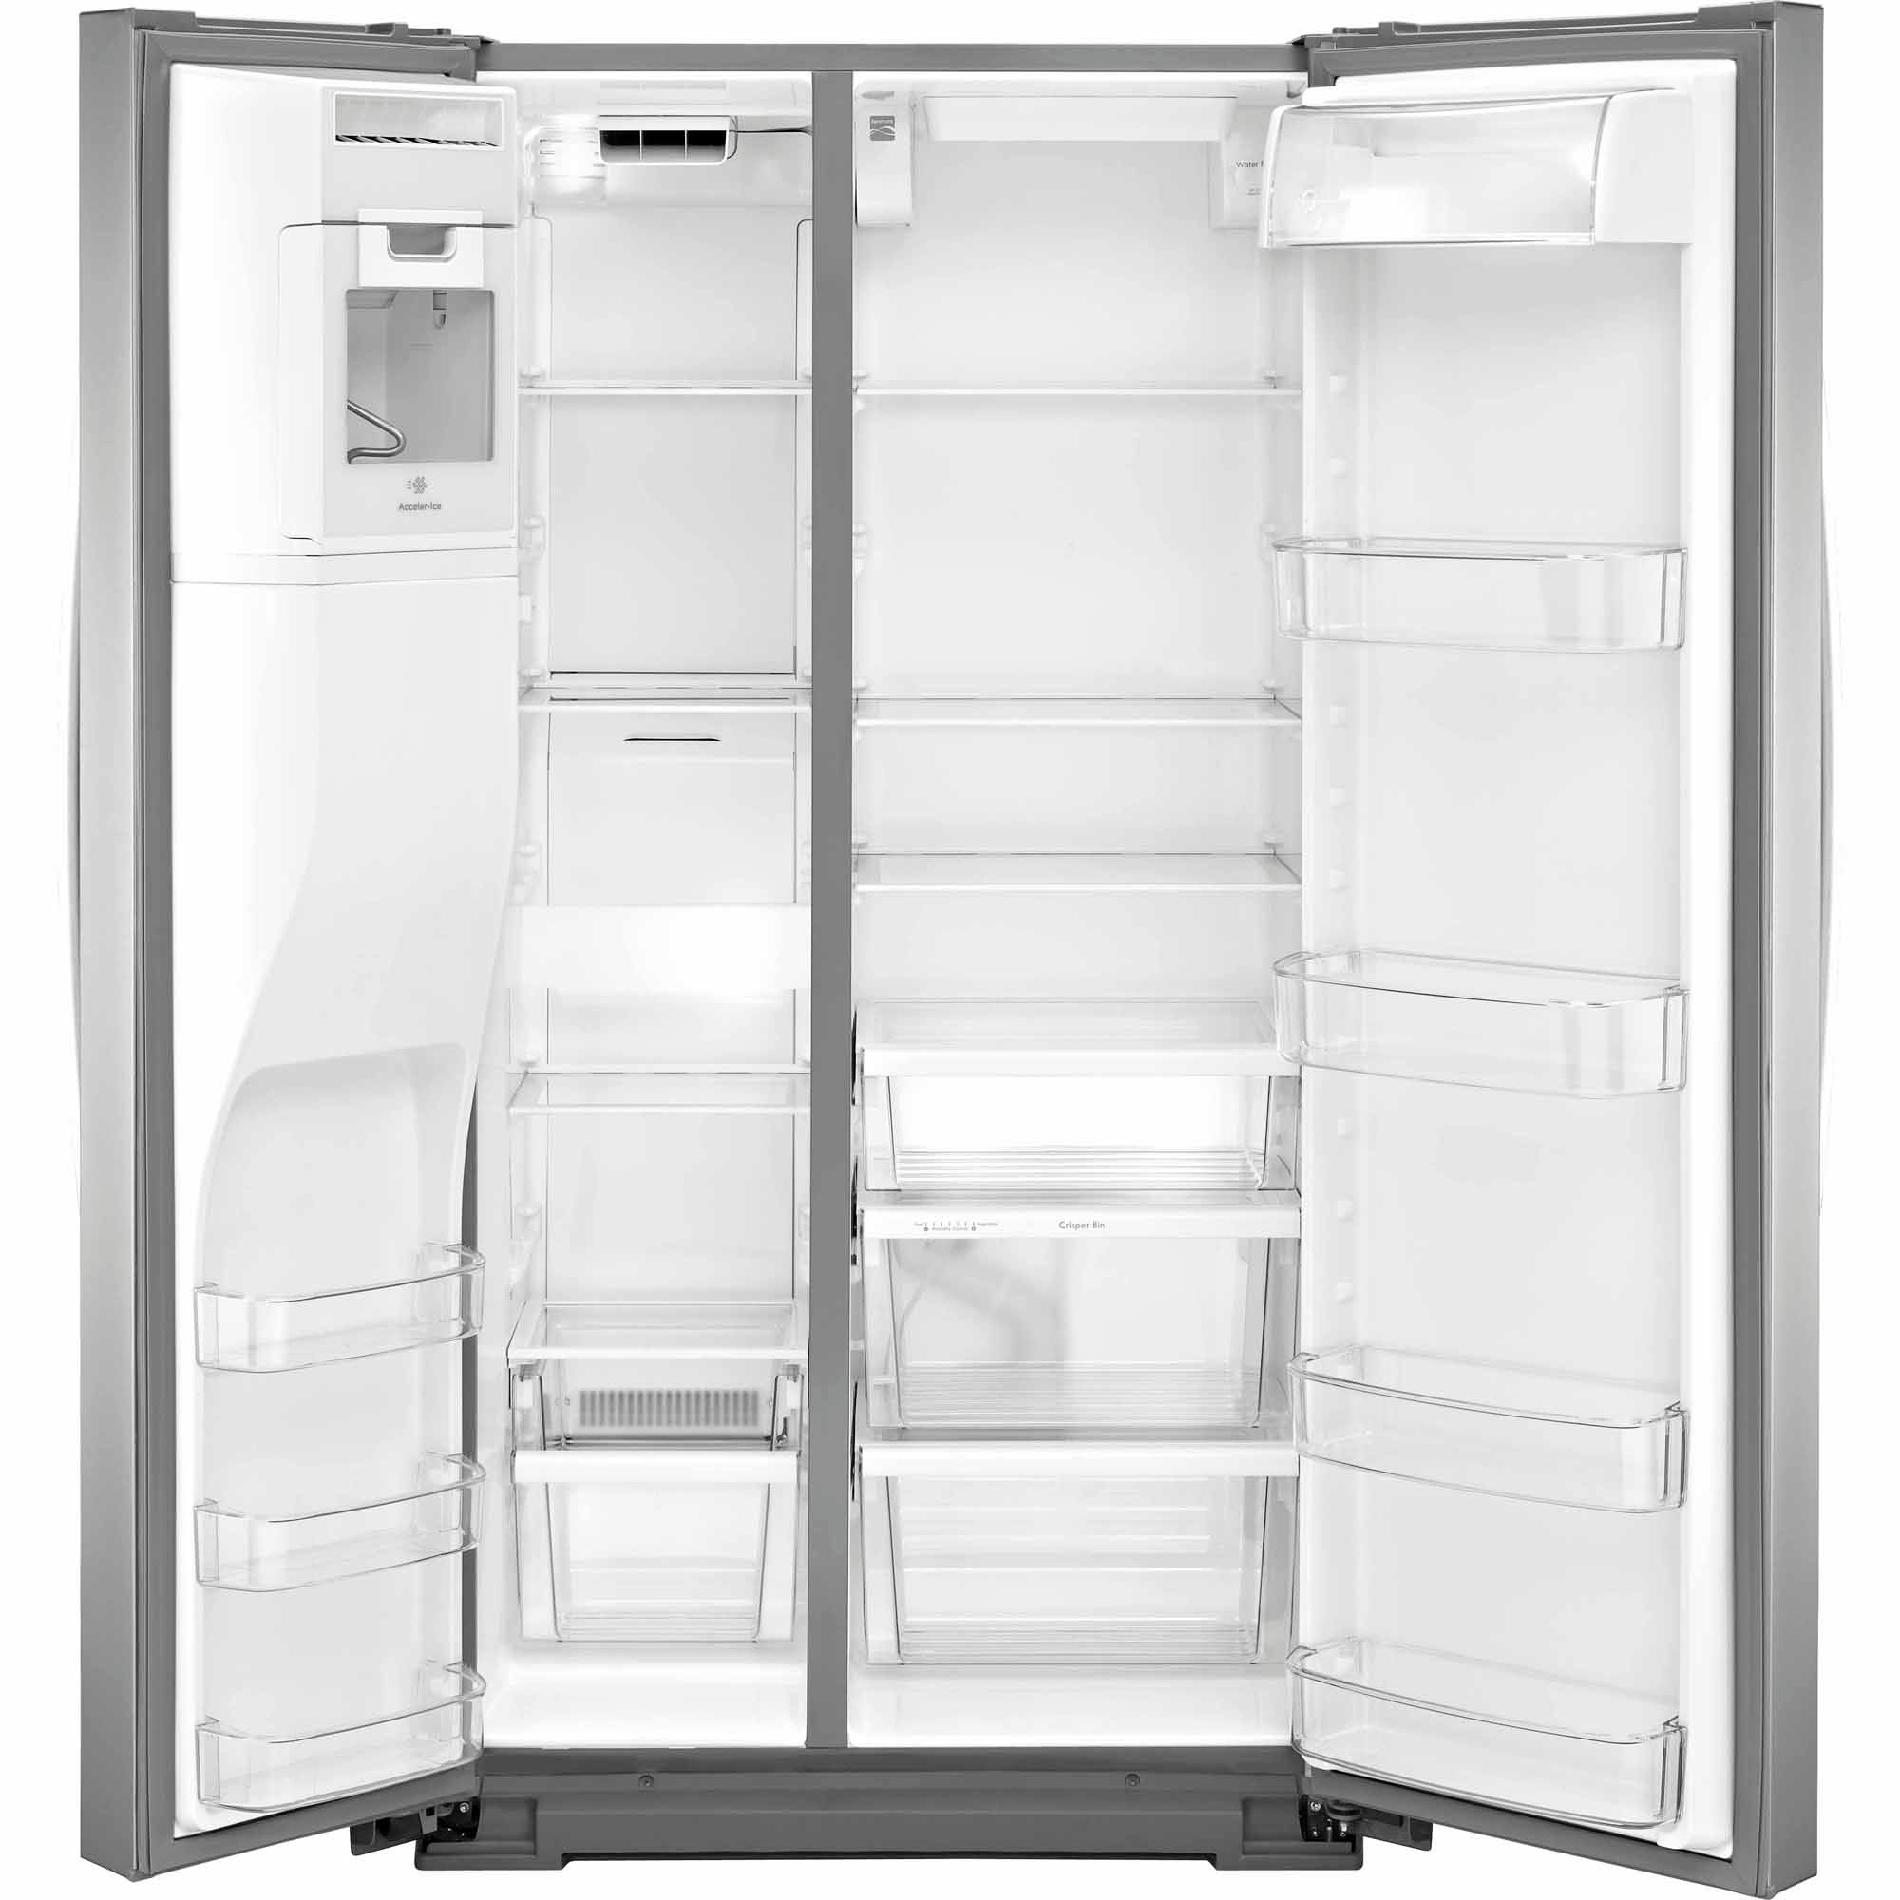 Kenmore 51783 21 cu. ft. Side-by-Side Refrigerator—Stainless Steel